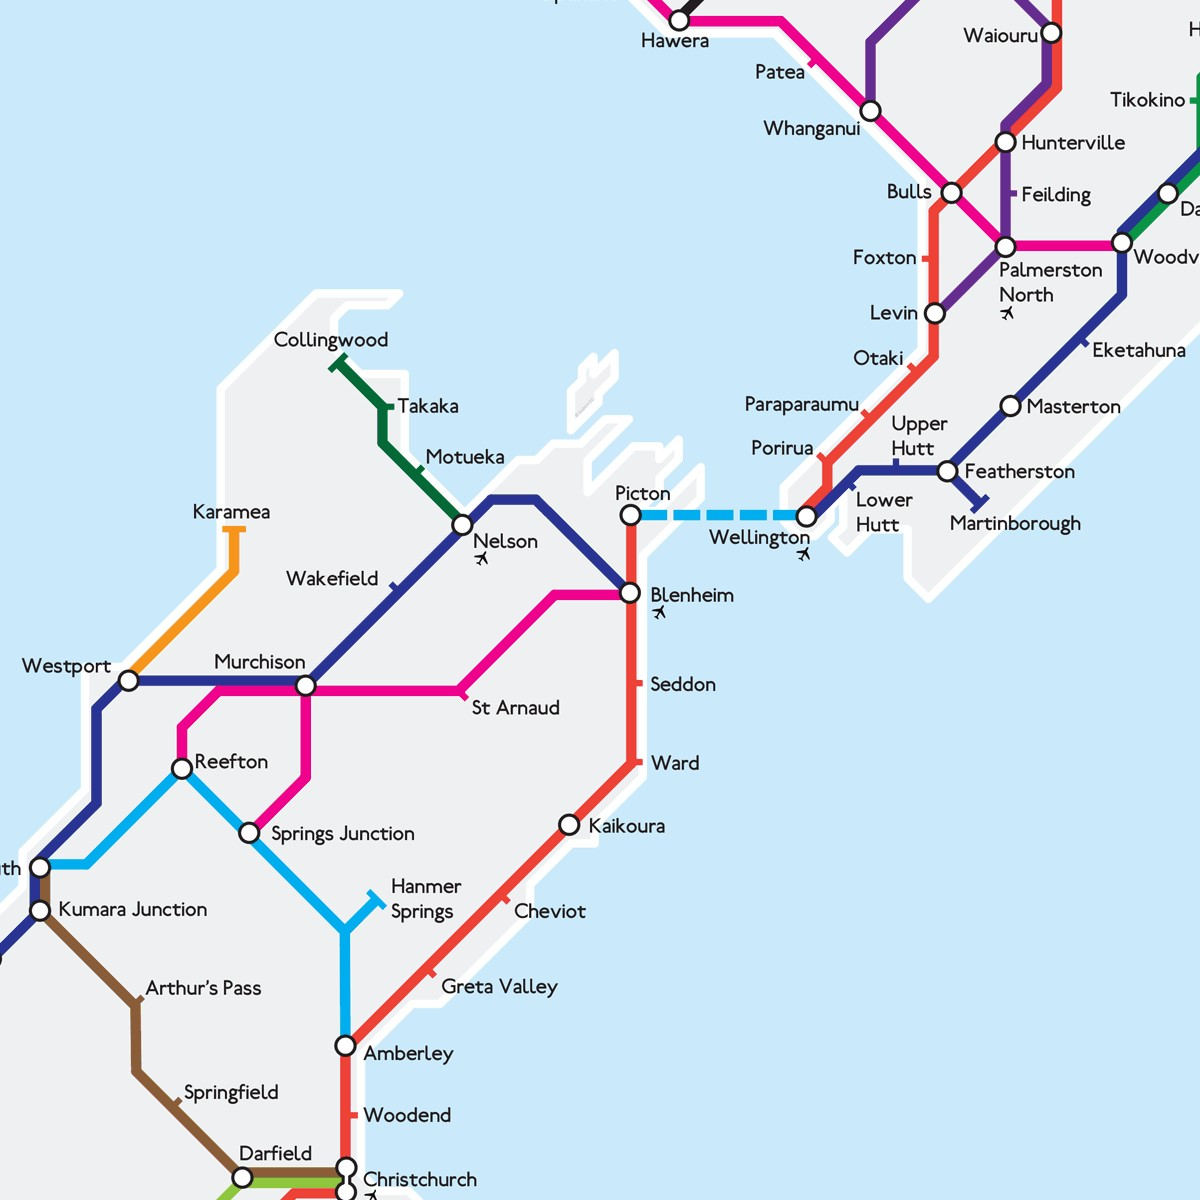 Where Is Christchurch New Zealand On The Map.New Zealand State Highways Metro Map The Map Kiwi